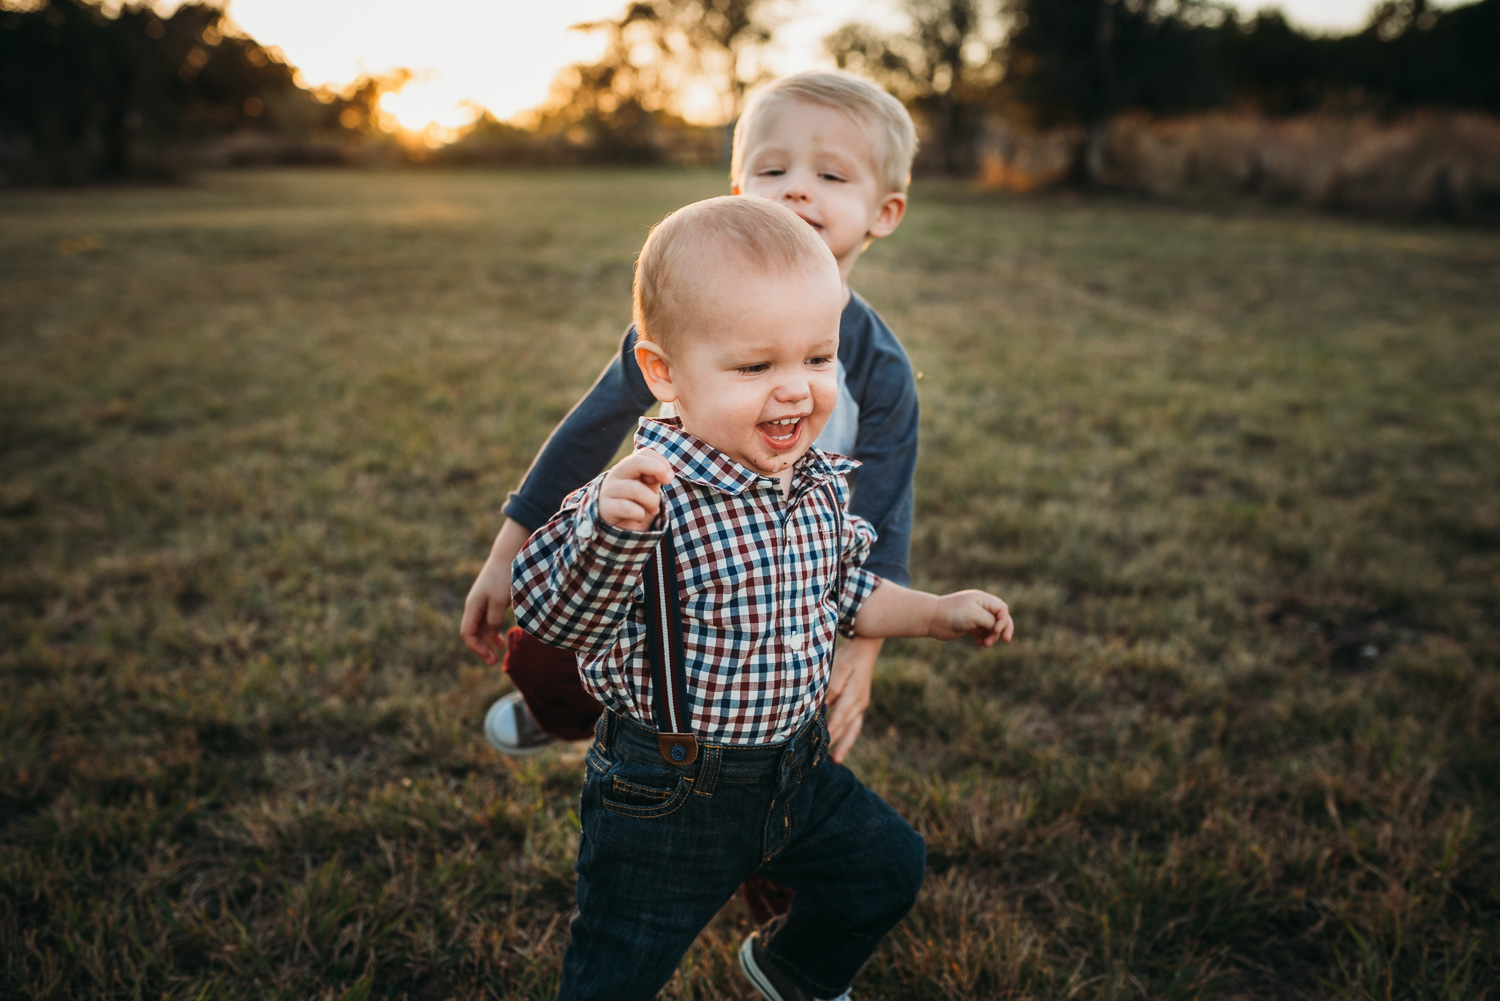 Abby Kennan Photography_San Antonio Family Photographer_San Antonio Photographer_Abby Kennan_San Antonio Child Photographer_San Antonio Lifestyle Family Photographer_Lifestyle Photography_San Antonio-7.jpg